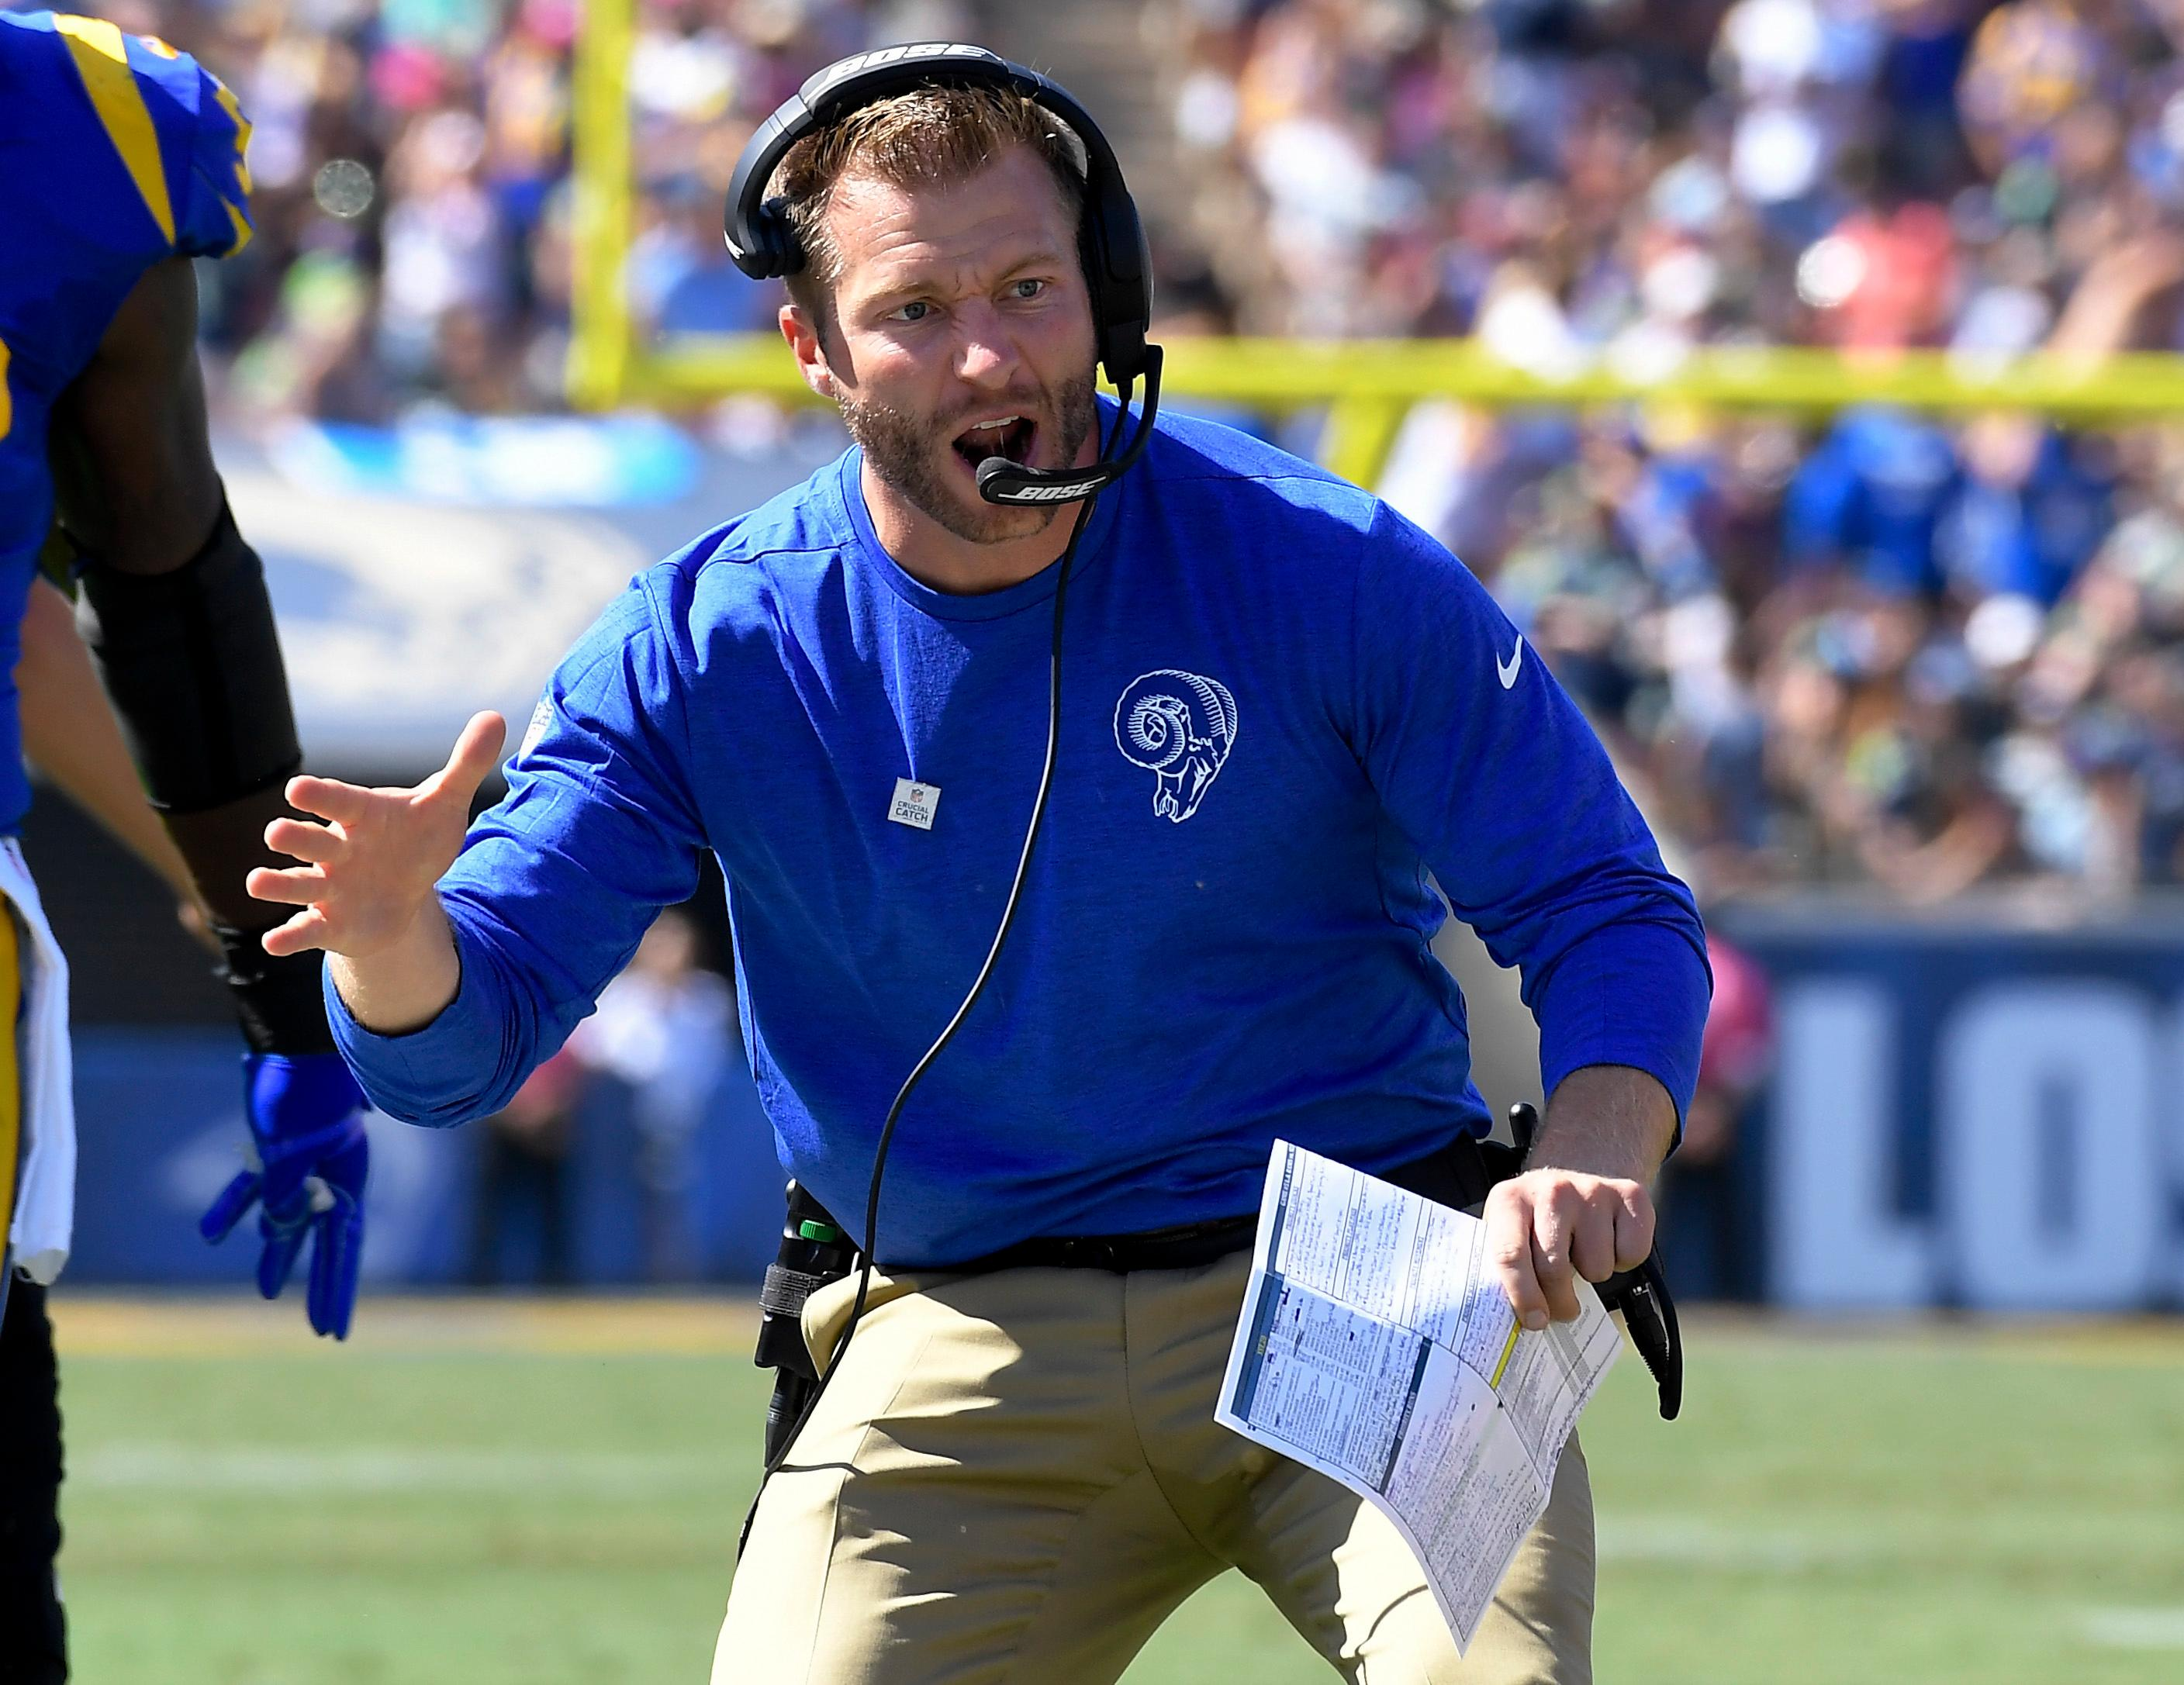 Los Angeles Rams head coach Sean McVay celebrates after a touchdown against the Seattle Seahawks during the first half of an NFL football game Sunday, Oct. 8, 2017, in Los Angeles. (AP Photo/Mark J. Terrill)